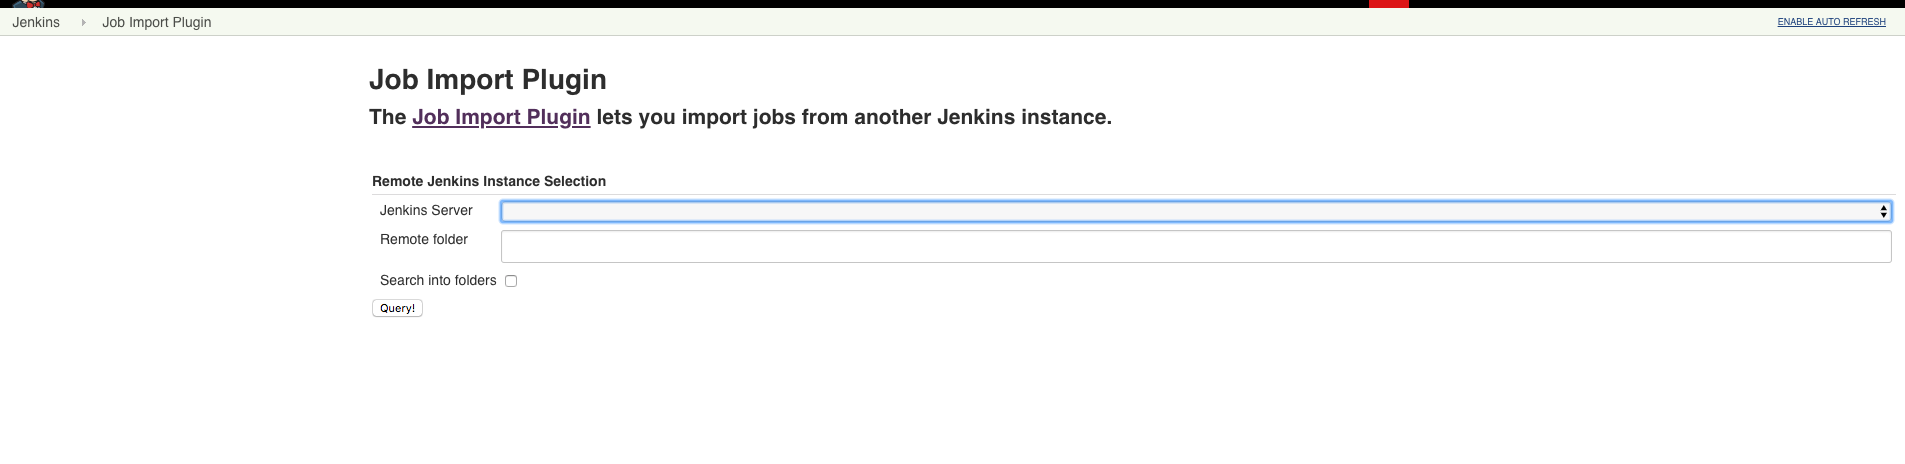 JENKINS-42197] Job import plugin refreshes the page after